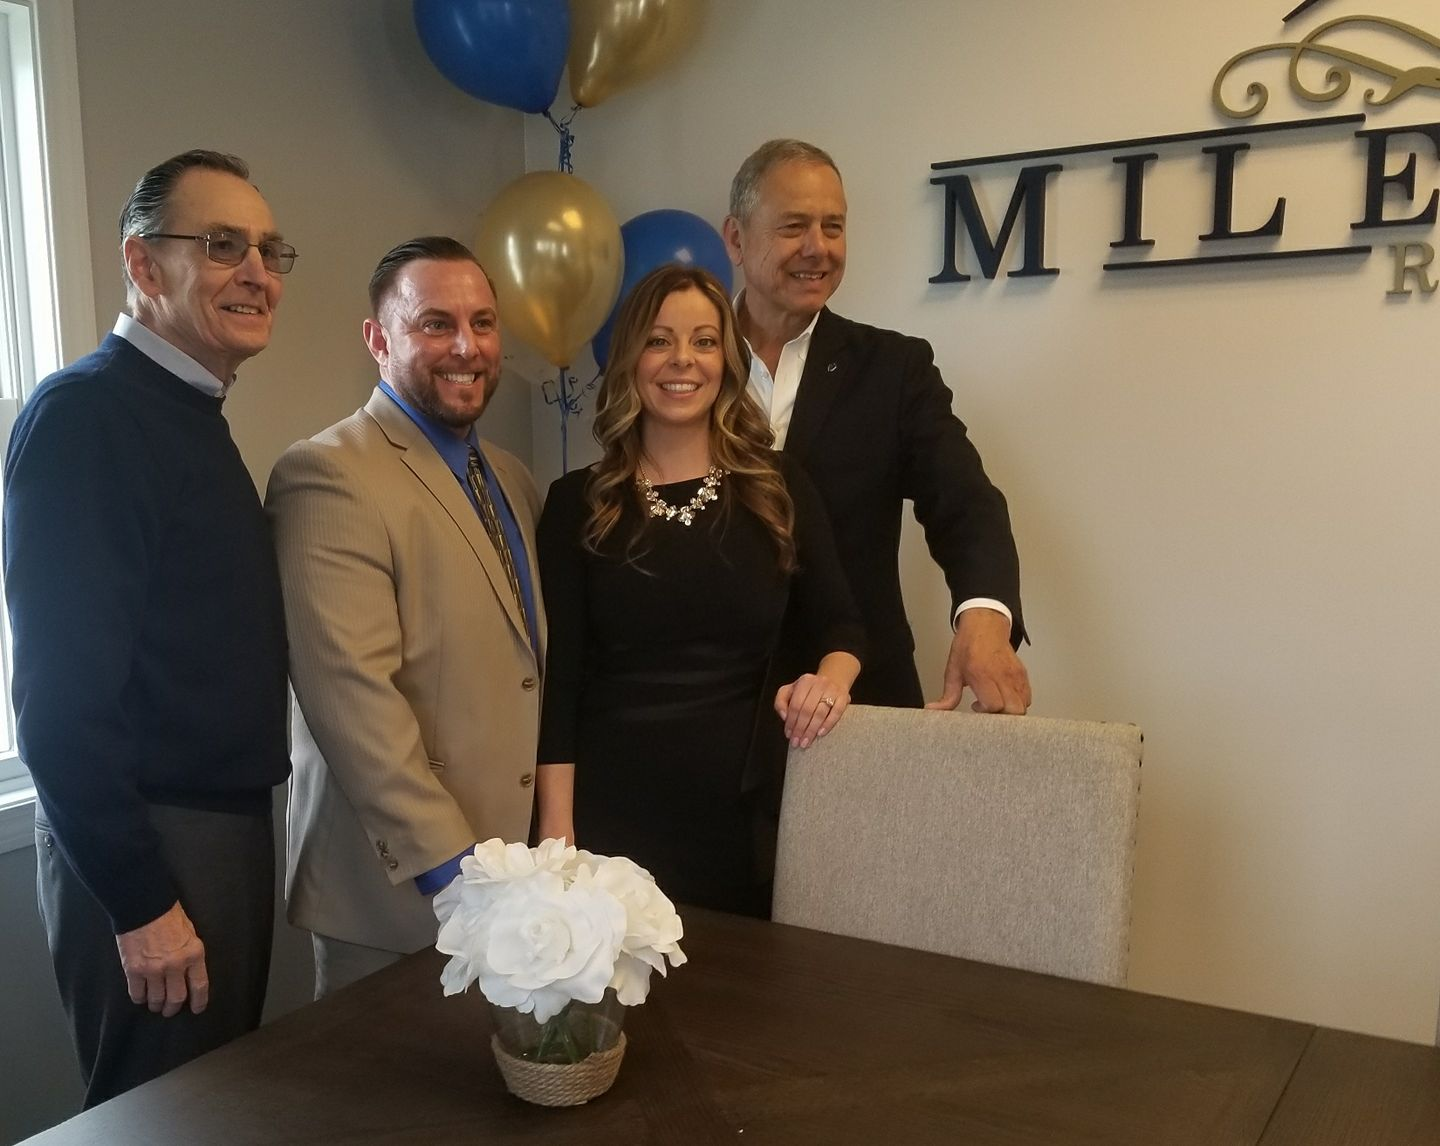 Another new business in Westport, Milestone Realty! Thank you Keith and Debra Viveiros for bringing jobs to Westport. Former Fall River Mayor Viveiros is very proud of his grandson